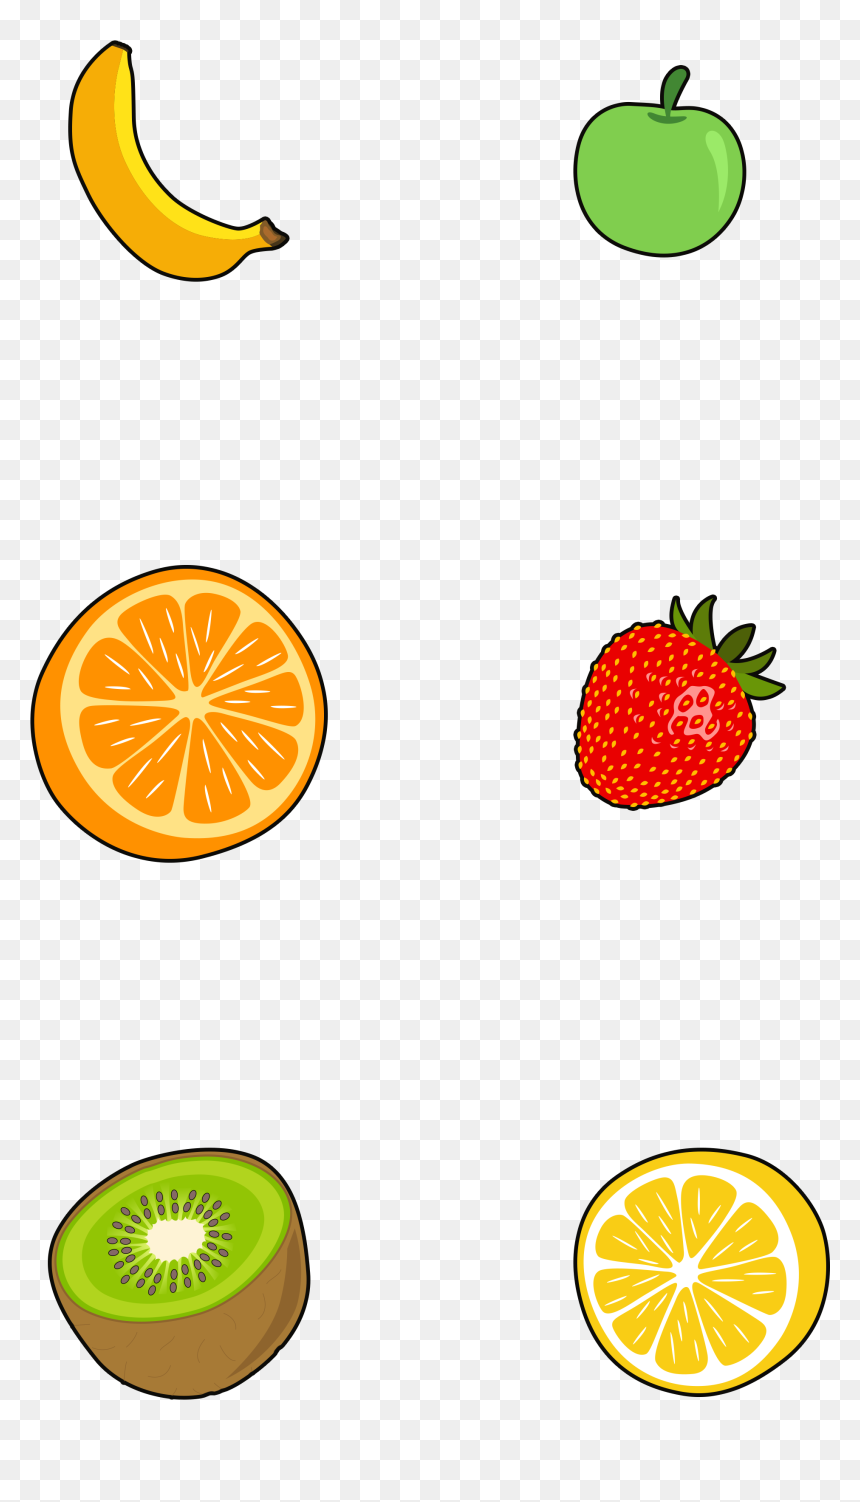 Transparent Fruits And Vegetables Border Clipart - ตกแต่ง ใบ งาน ผล ไม้, HD Png Download